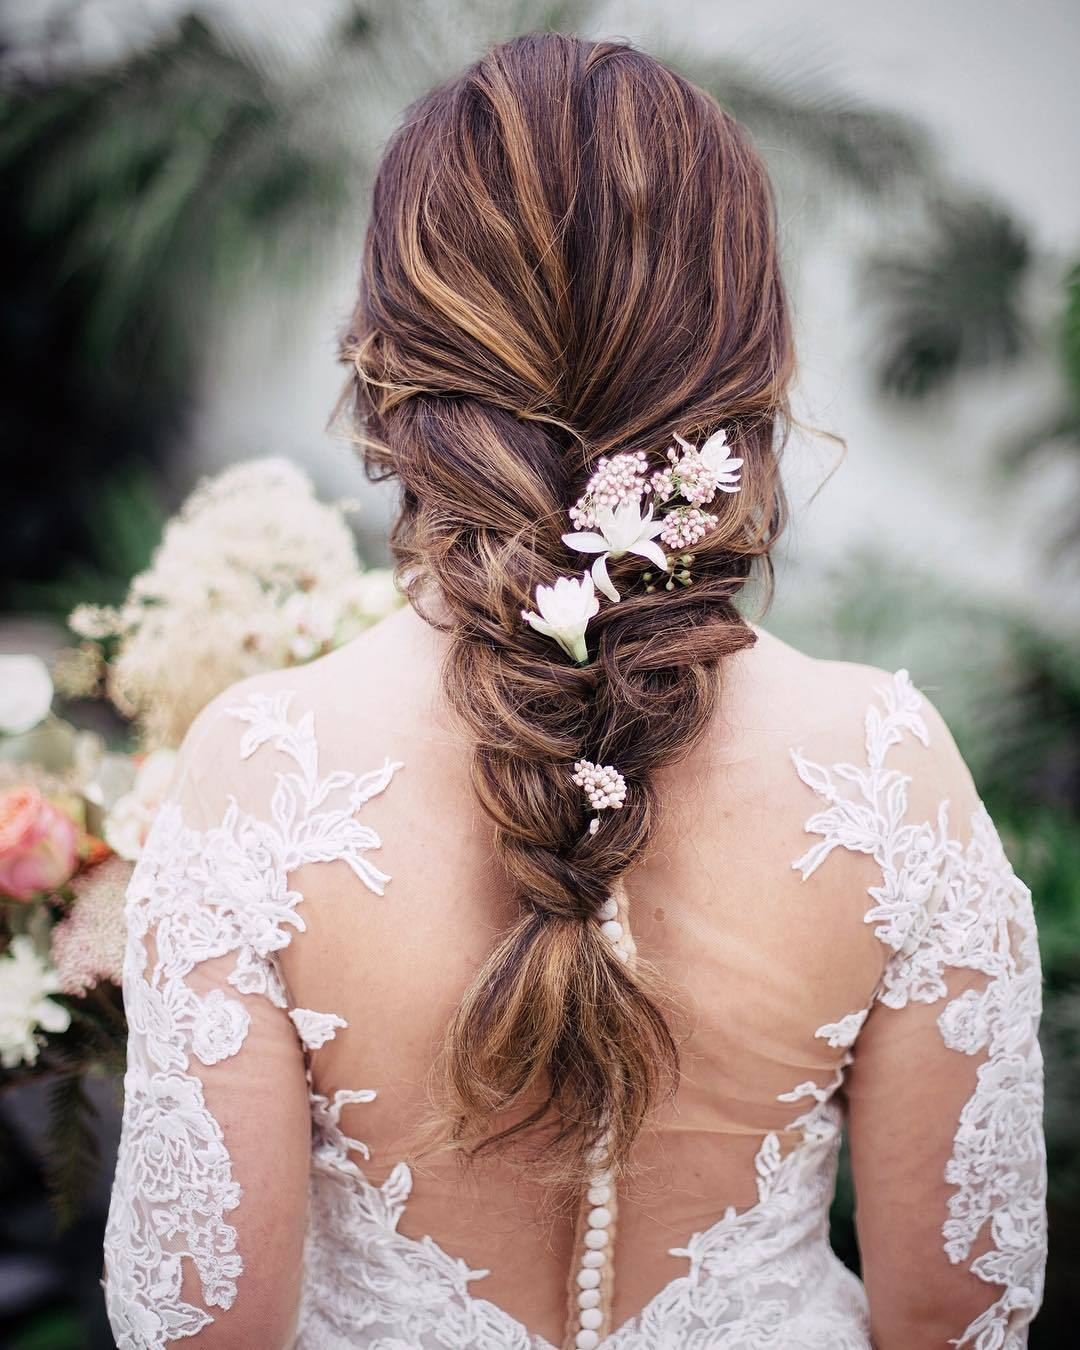 Wedding hairstyles: Woman with long chestnut hair styled into a loose braid with flowers in it, wearing wedding dress and posing outside